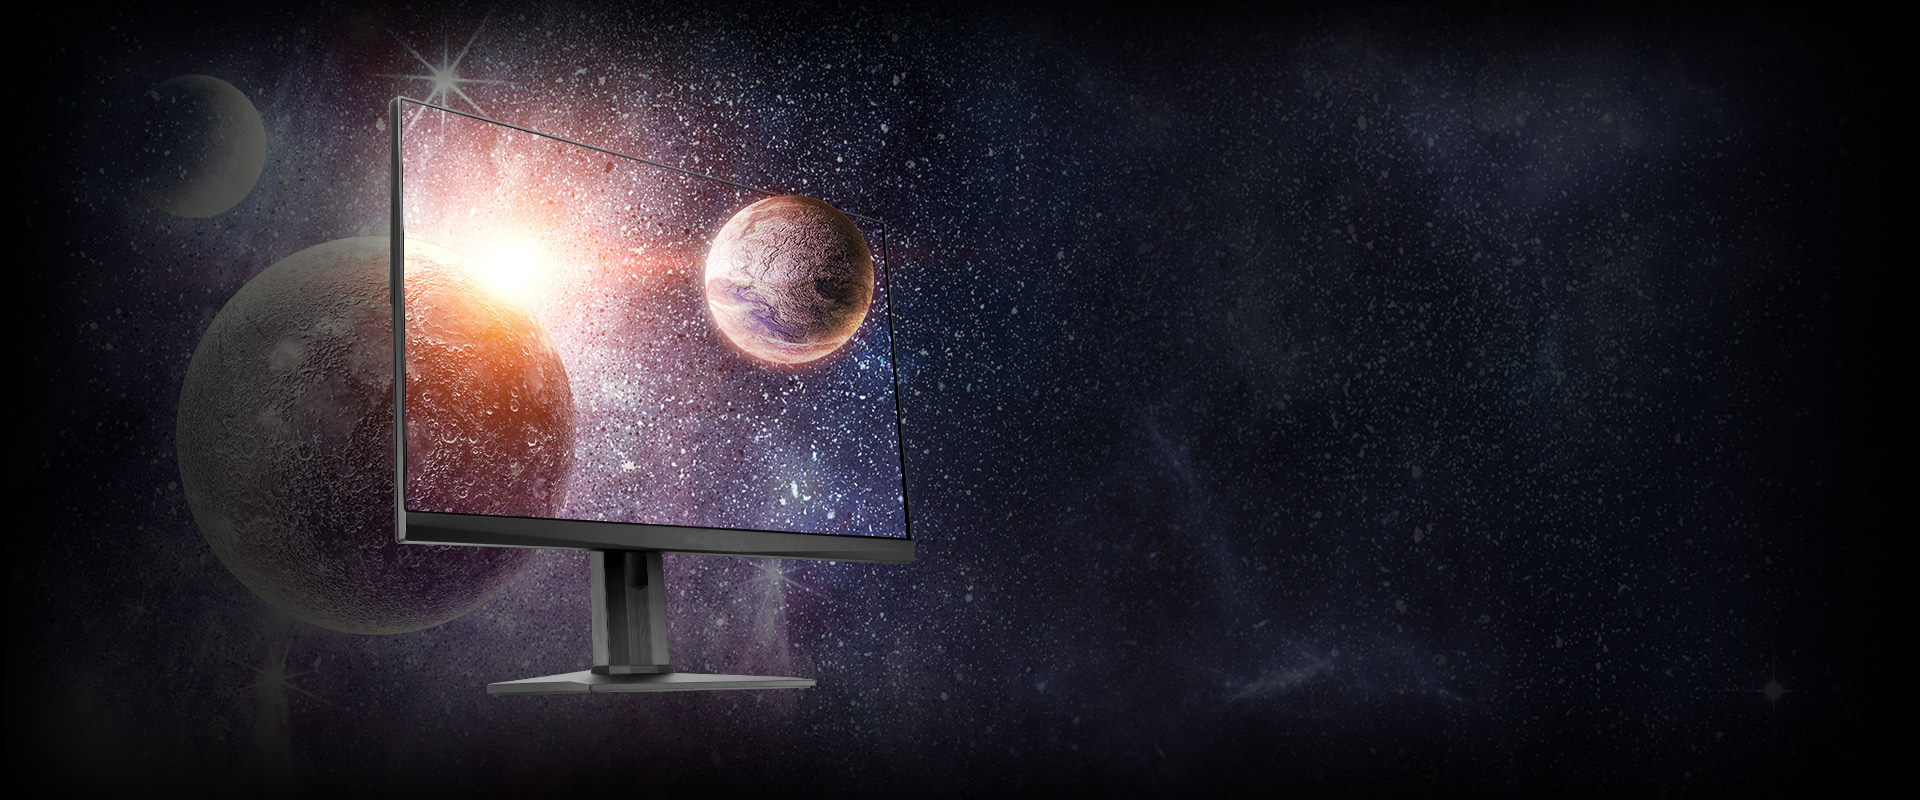 the monitor with a space image as screen